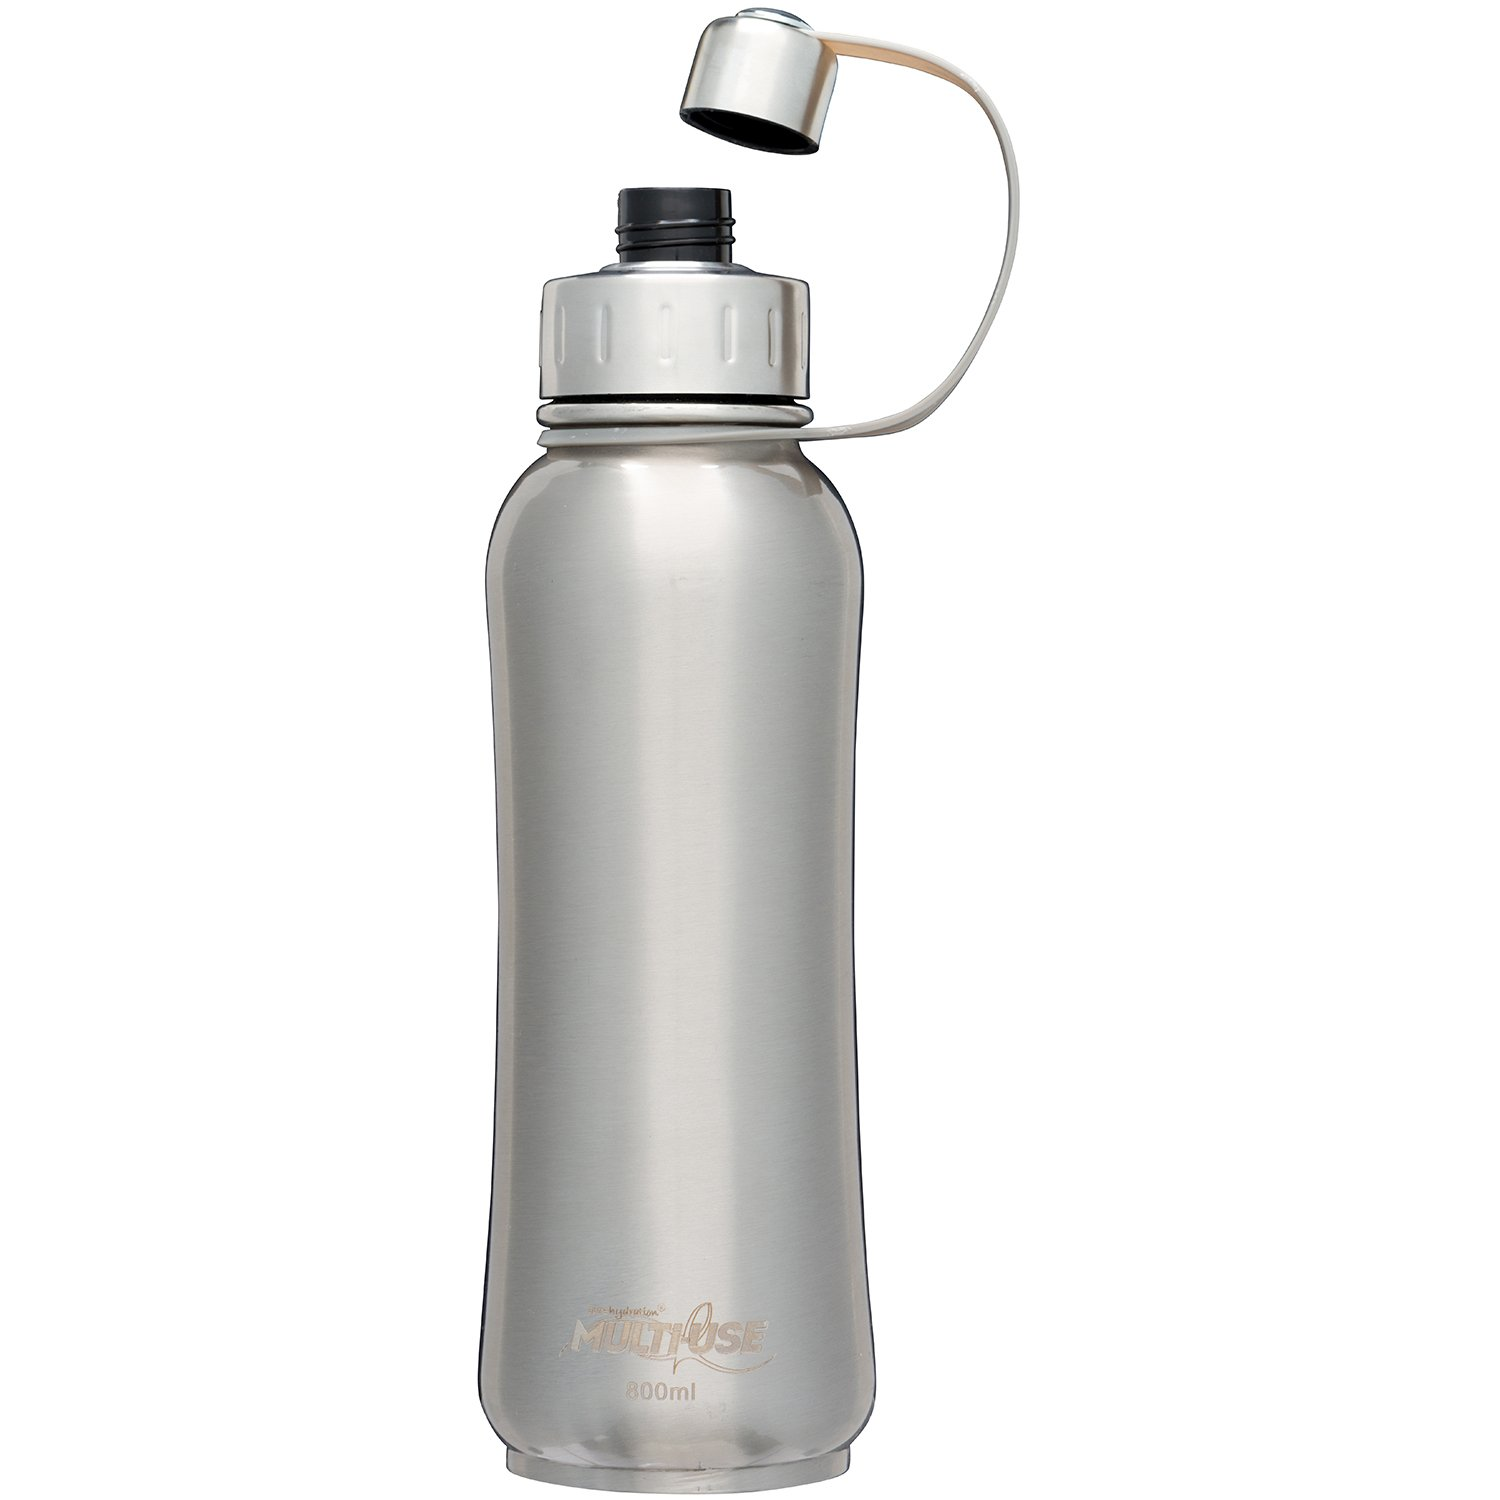 PureHydration Multi-Use Stainless Steel Tri-Ply Insulated Bottle with Infuser Basket (Whispering Wood, 800ml) by PureHydration Multi-Use (Image #2)